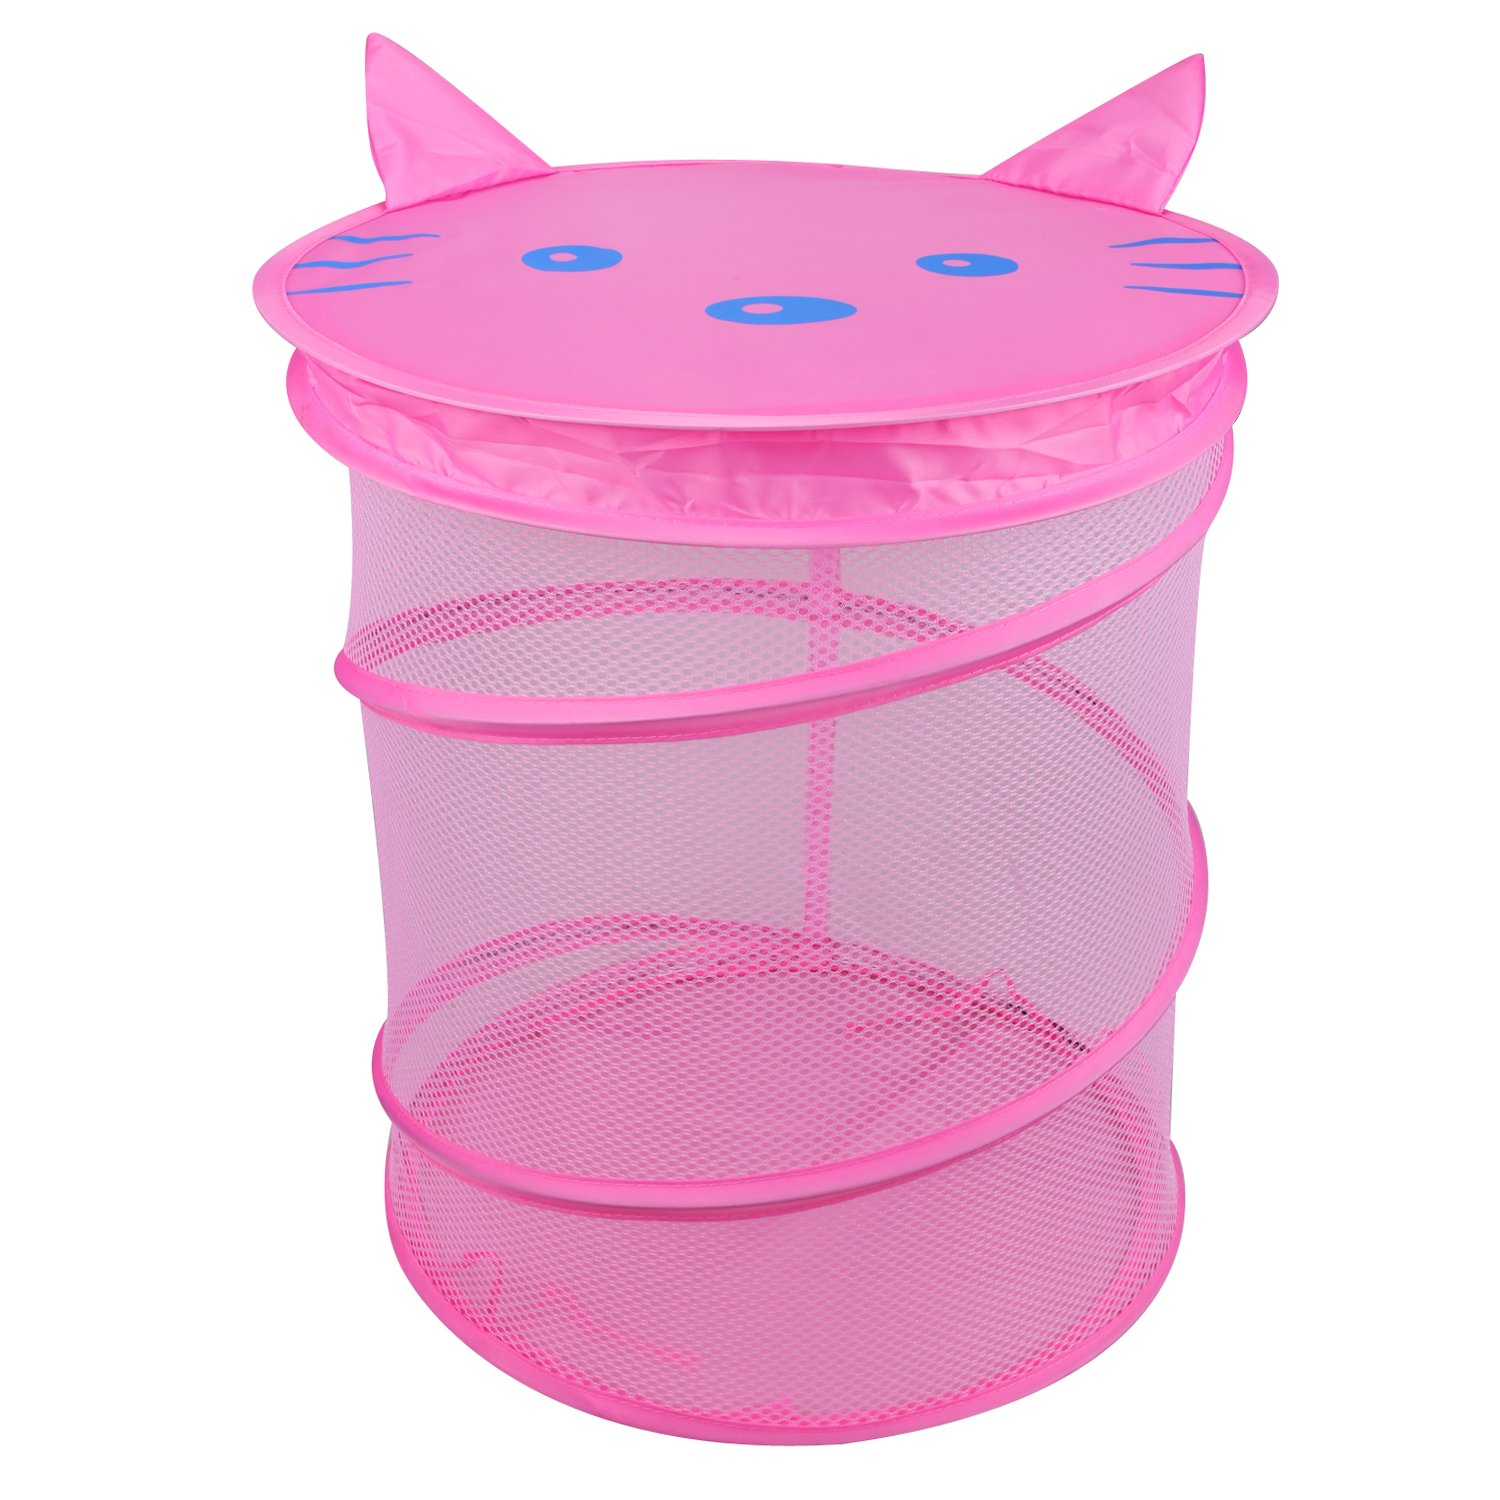 Leadstar Pop Up Laundry Hamper Foldable Mesh Basket Storage Bag For Clothes Toys More Pink Cat